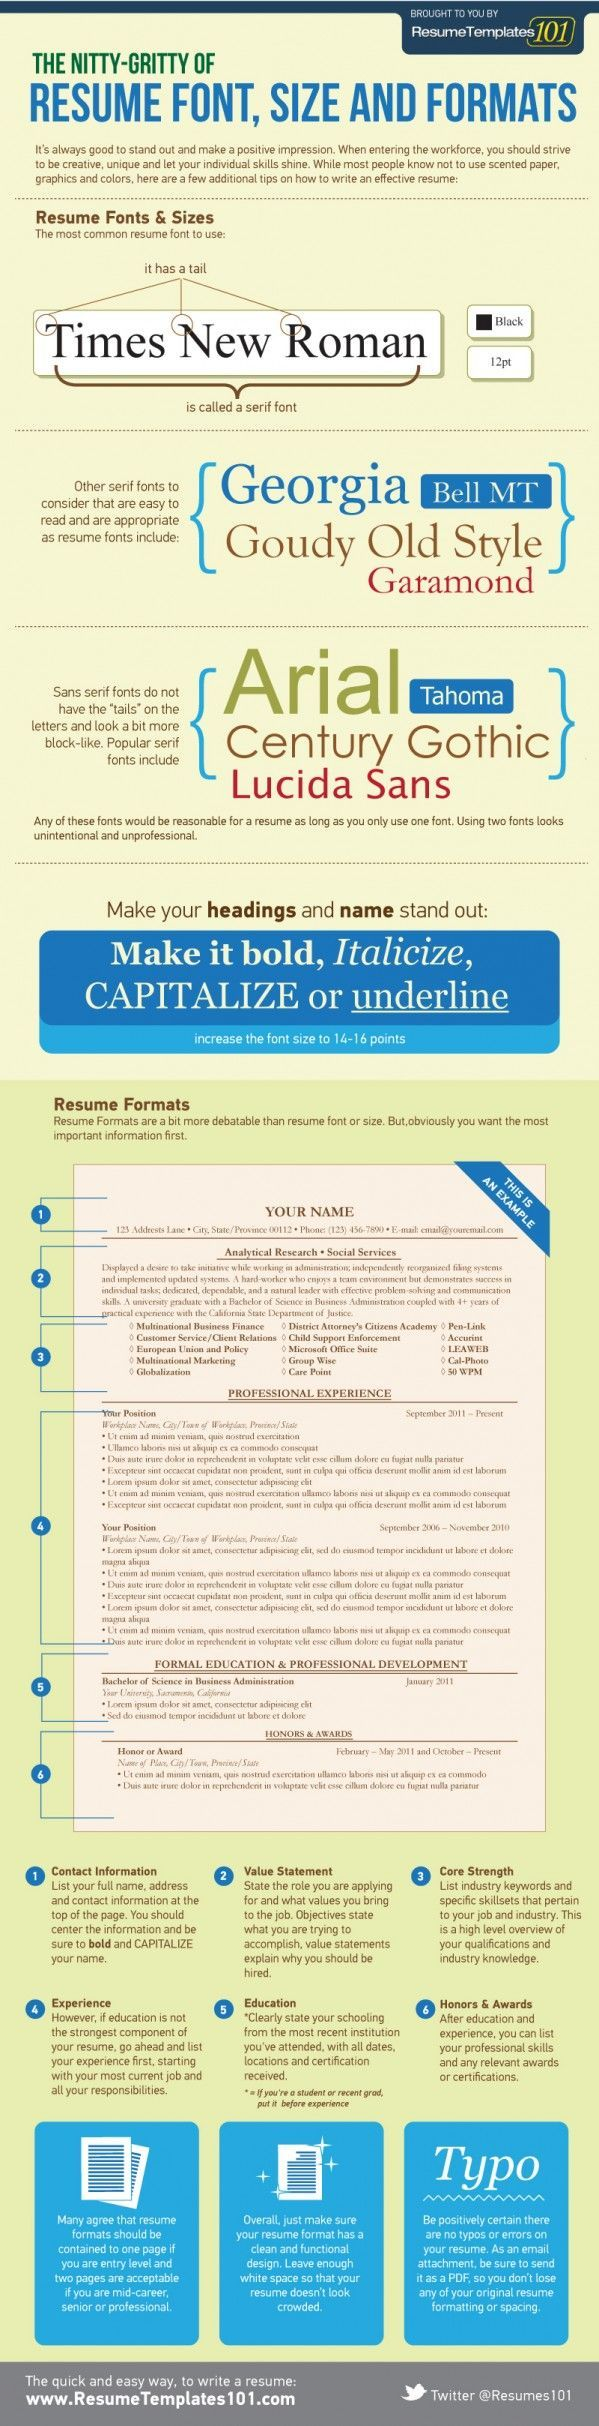 Best Fonts And Proper Font Size For Resumes Job Resume Cover Letter For Resume Resume Writing